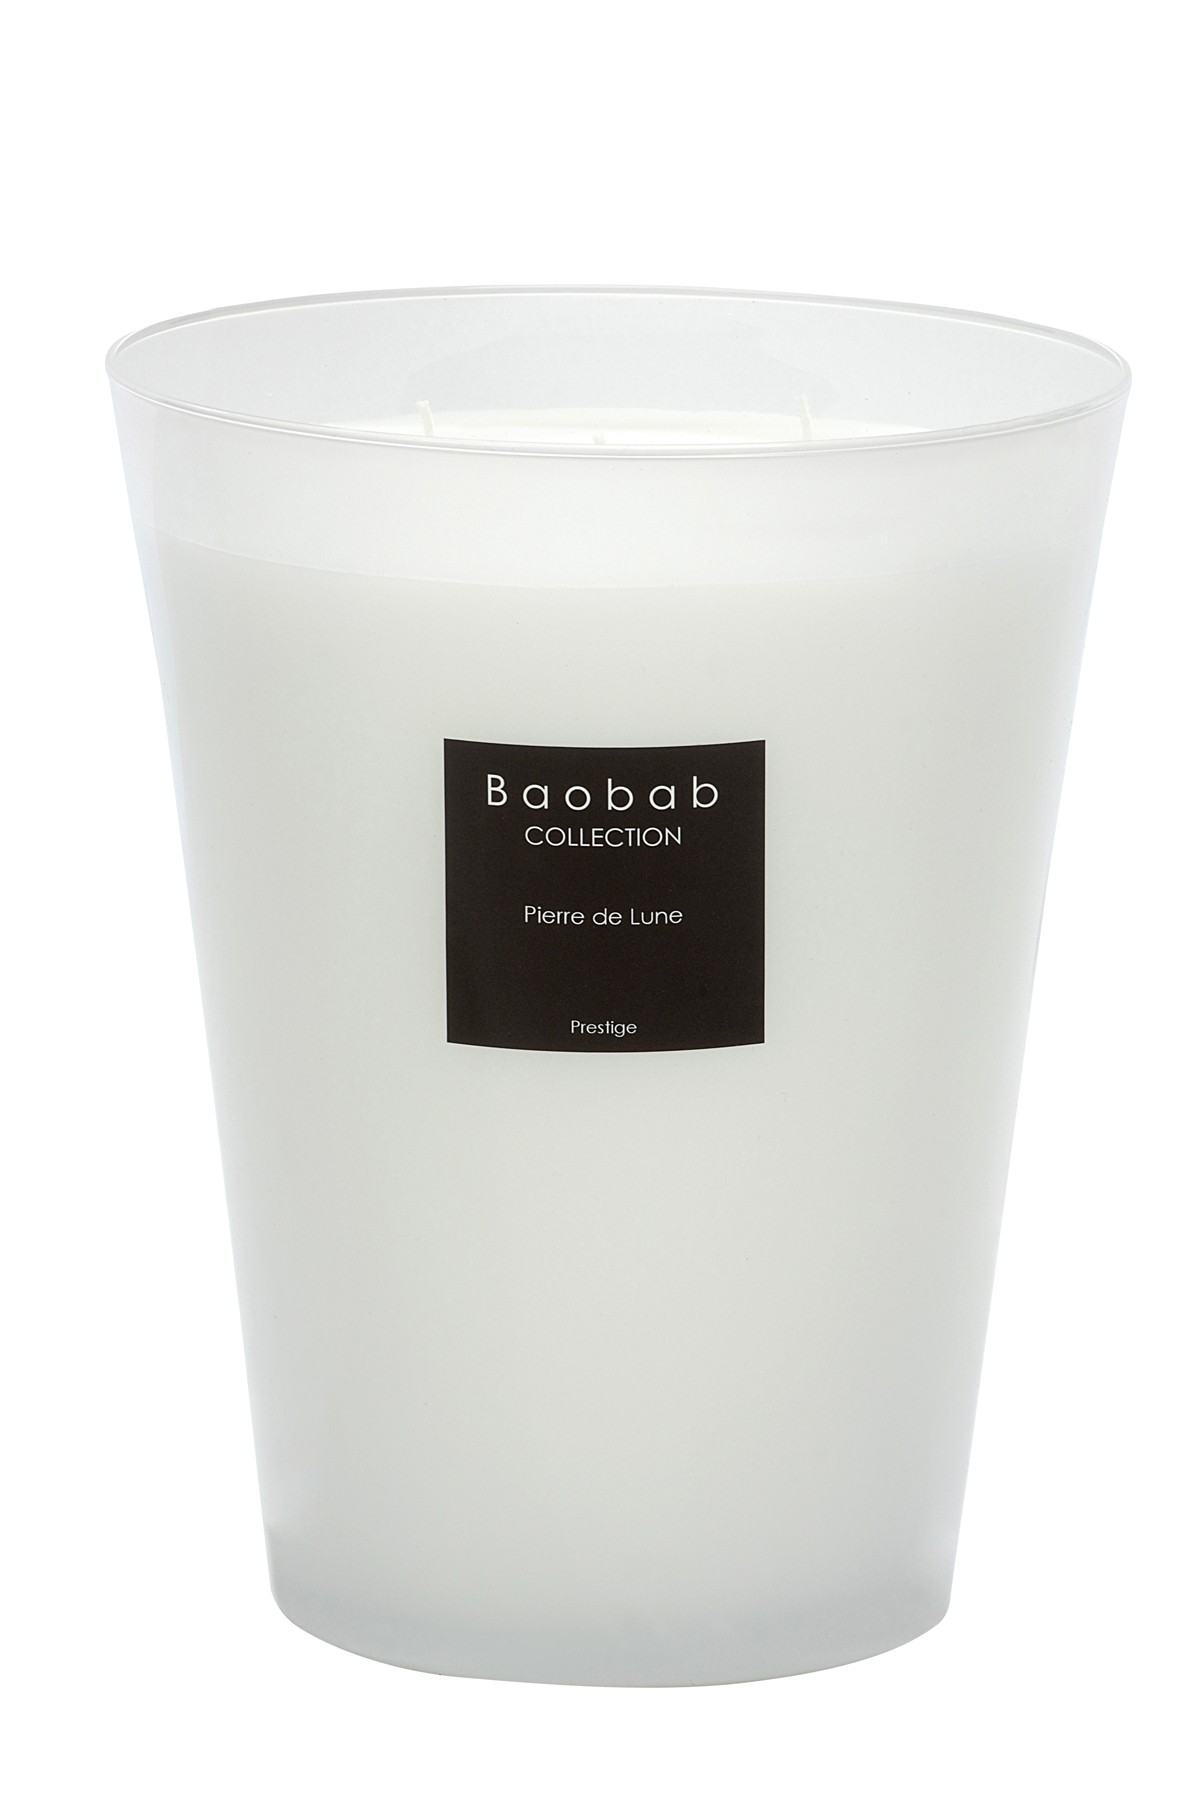 Bougie Baobab Paris Bougie Max 24 Pierre De Lune De Baobab Collection